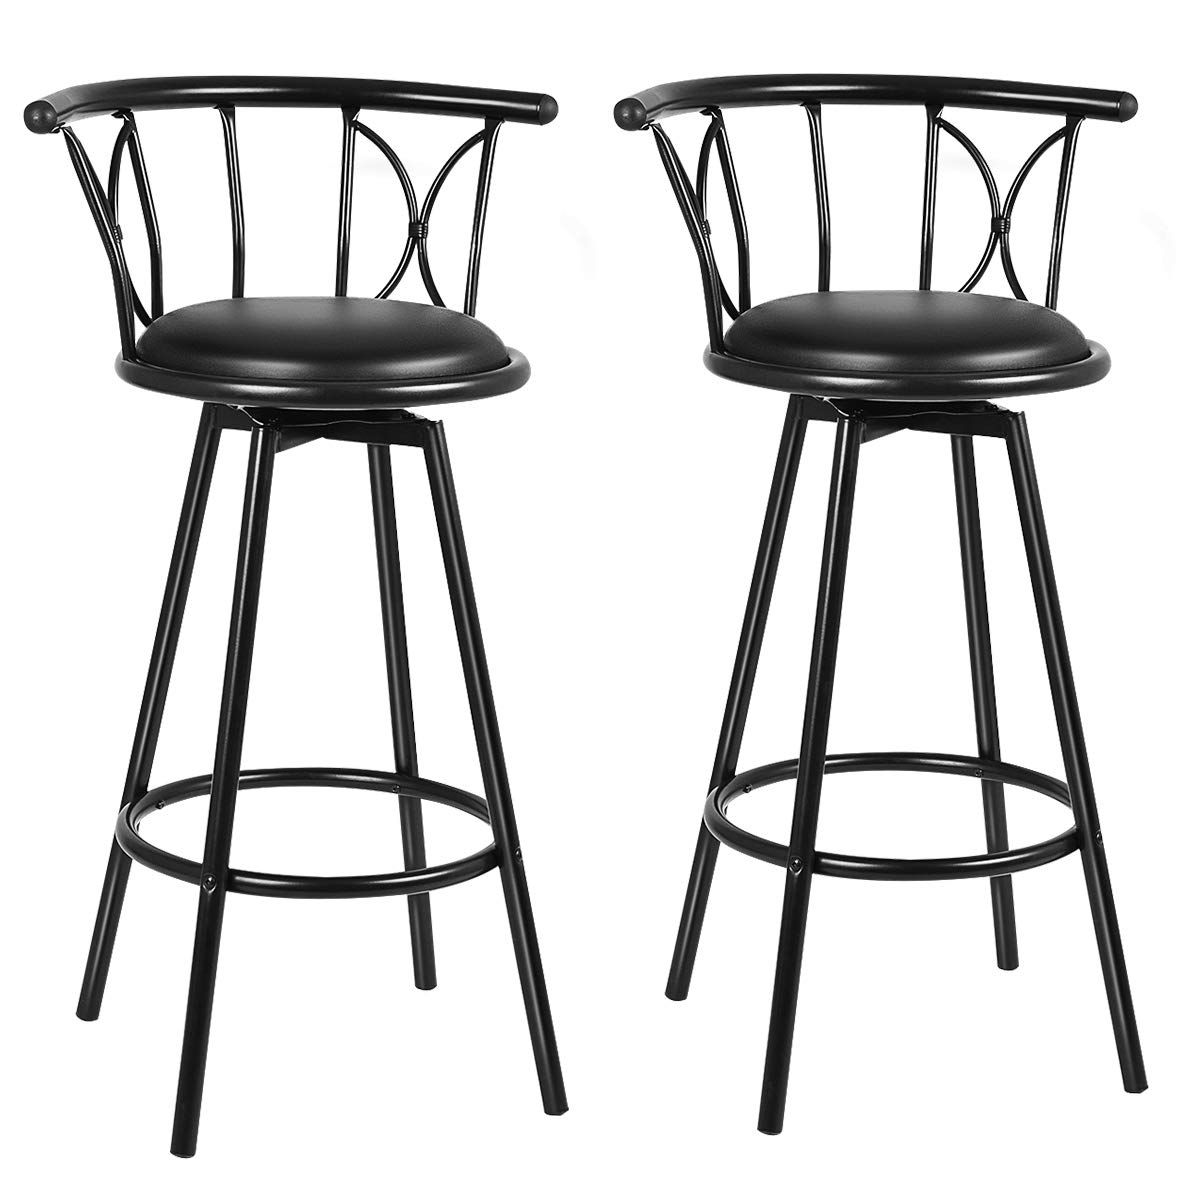 COSTWAY Bar Stools, Modern and Classic Rotatable Counter Pub PVC Leather Chairs, Round Padded Seat with Footrest Back, Bar Pub Dining Room Kitchen Home Furniture Black, Set of 2